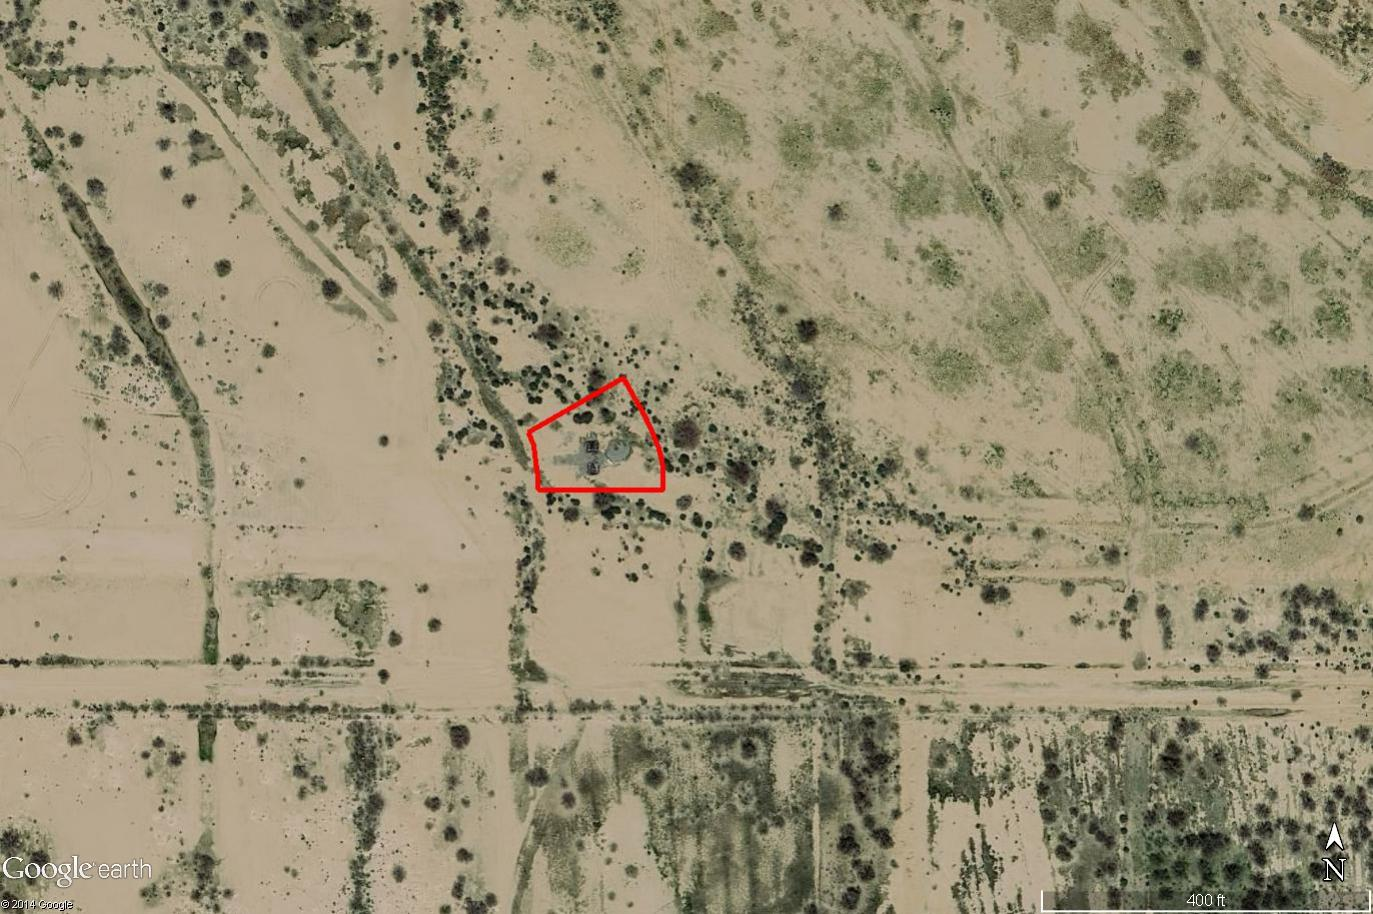 Secluded Escape Only 15 Minutes South of Casa Grande - Image 2